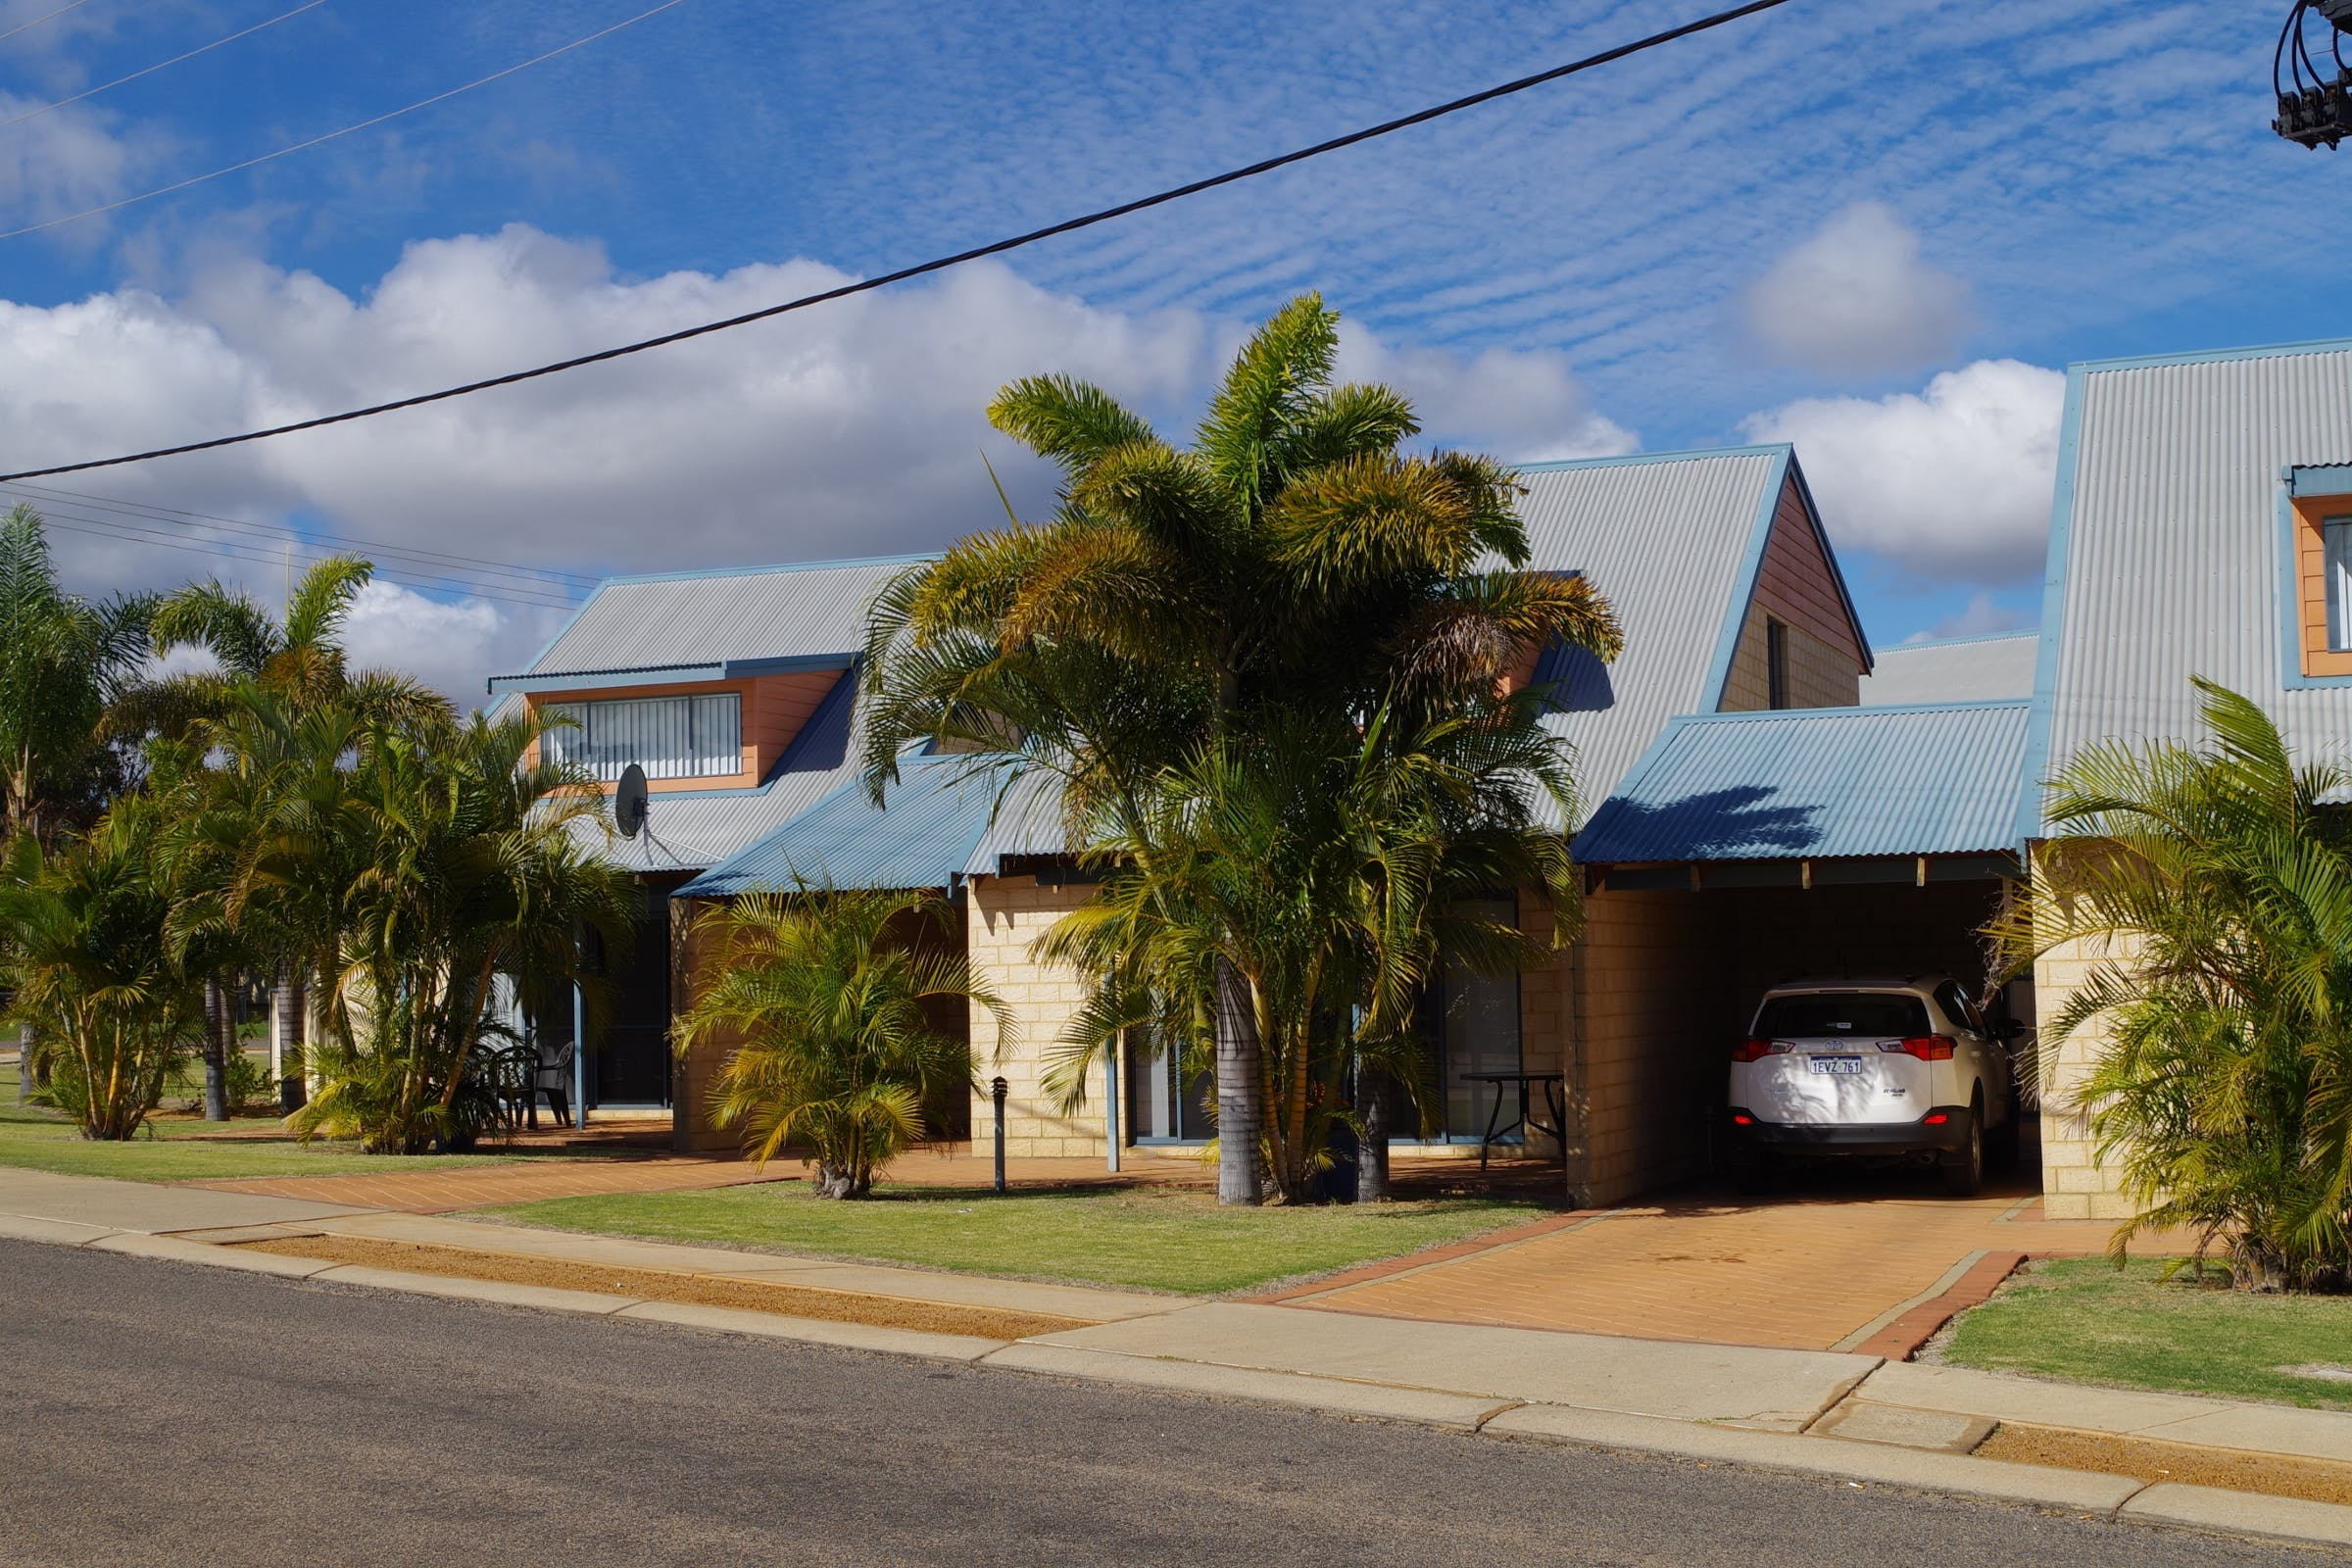 Looking for Kalbarri accommodation service? Kalbarri Hotel with One and Two bedroom Kalbarri holiday homes